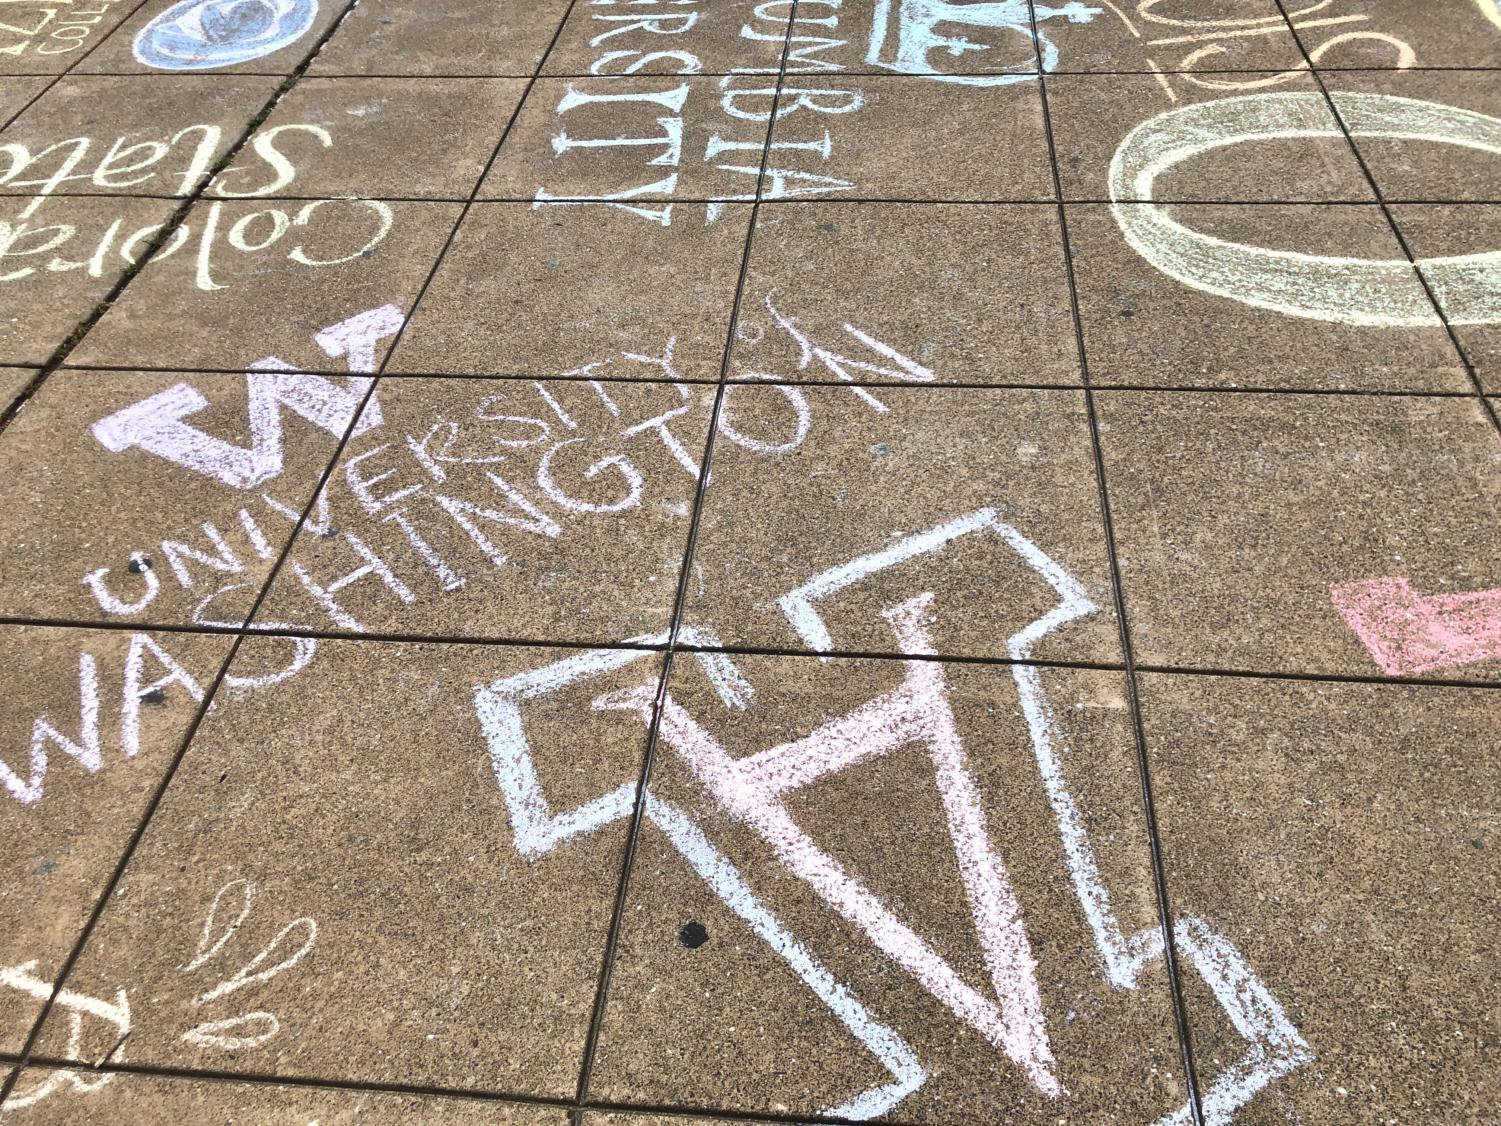 Seniors decorate the quad with chalk logos of their colleges.